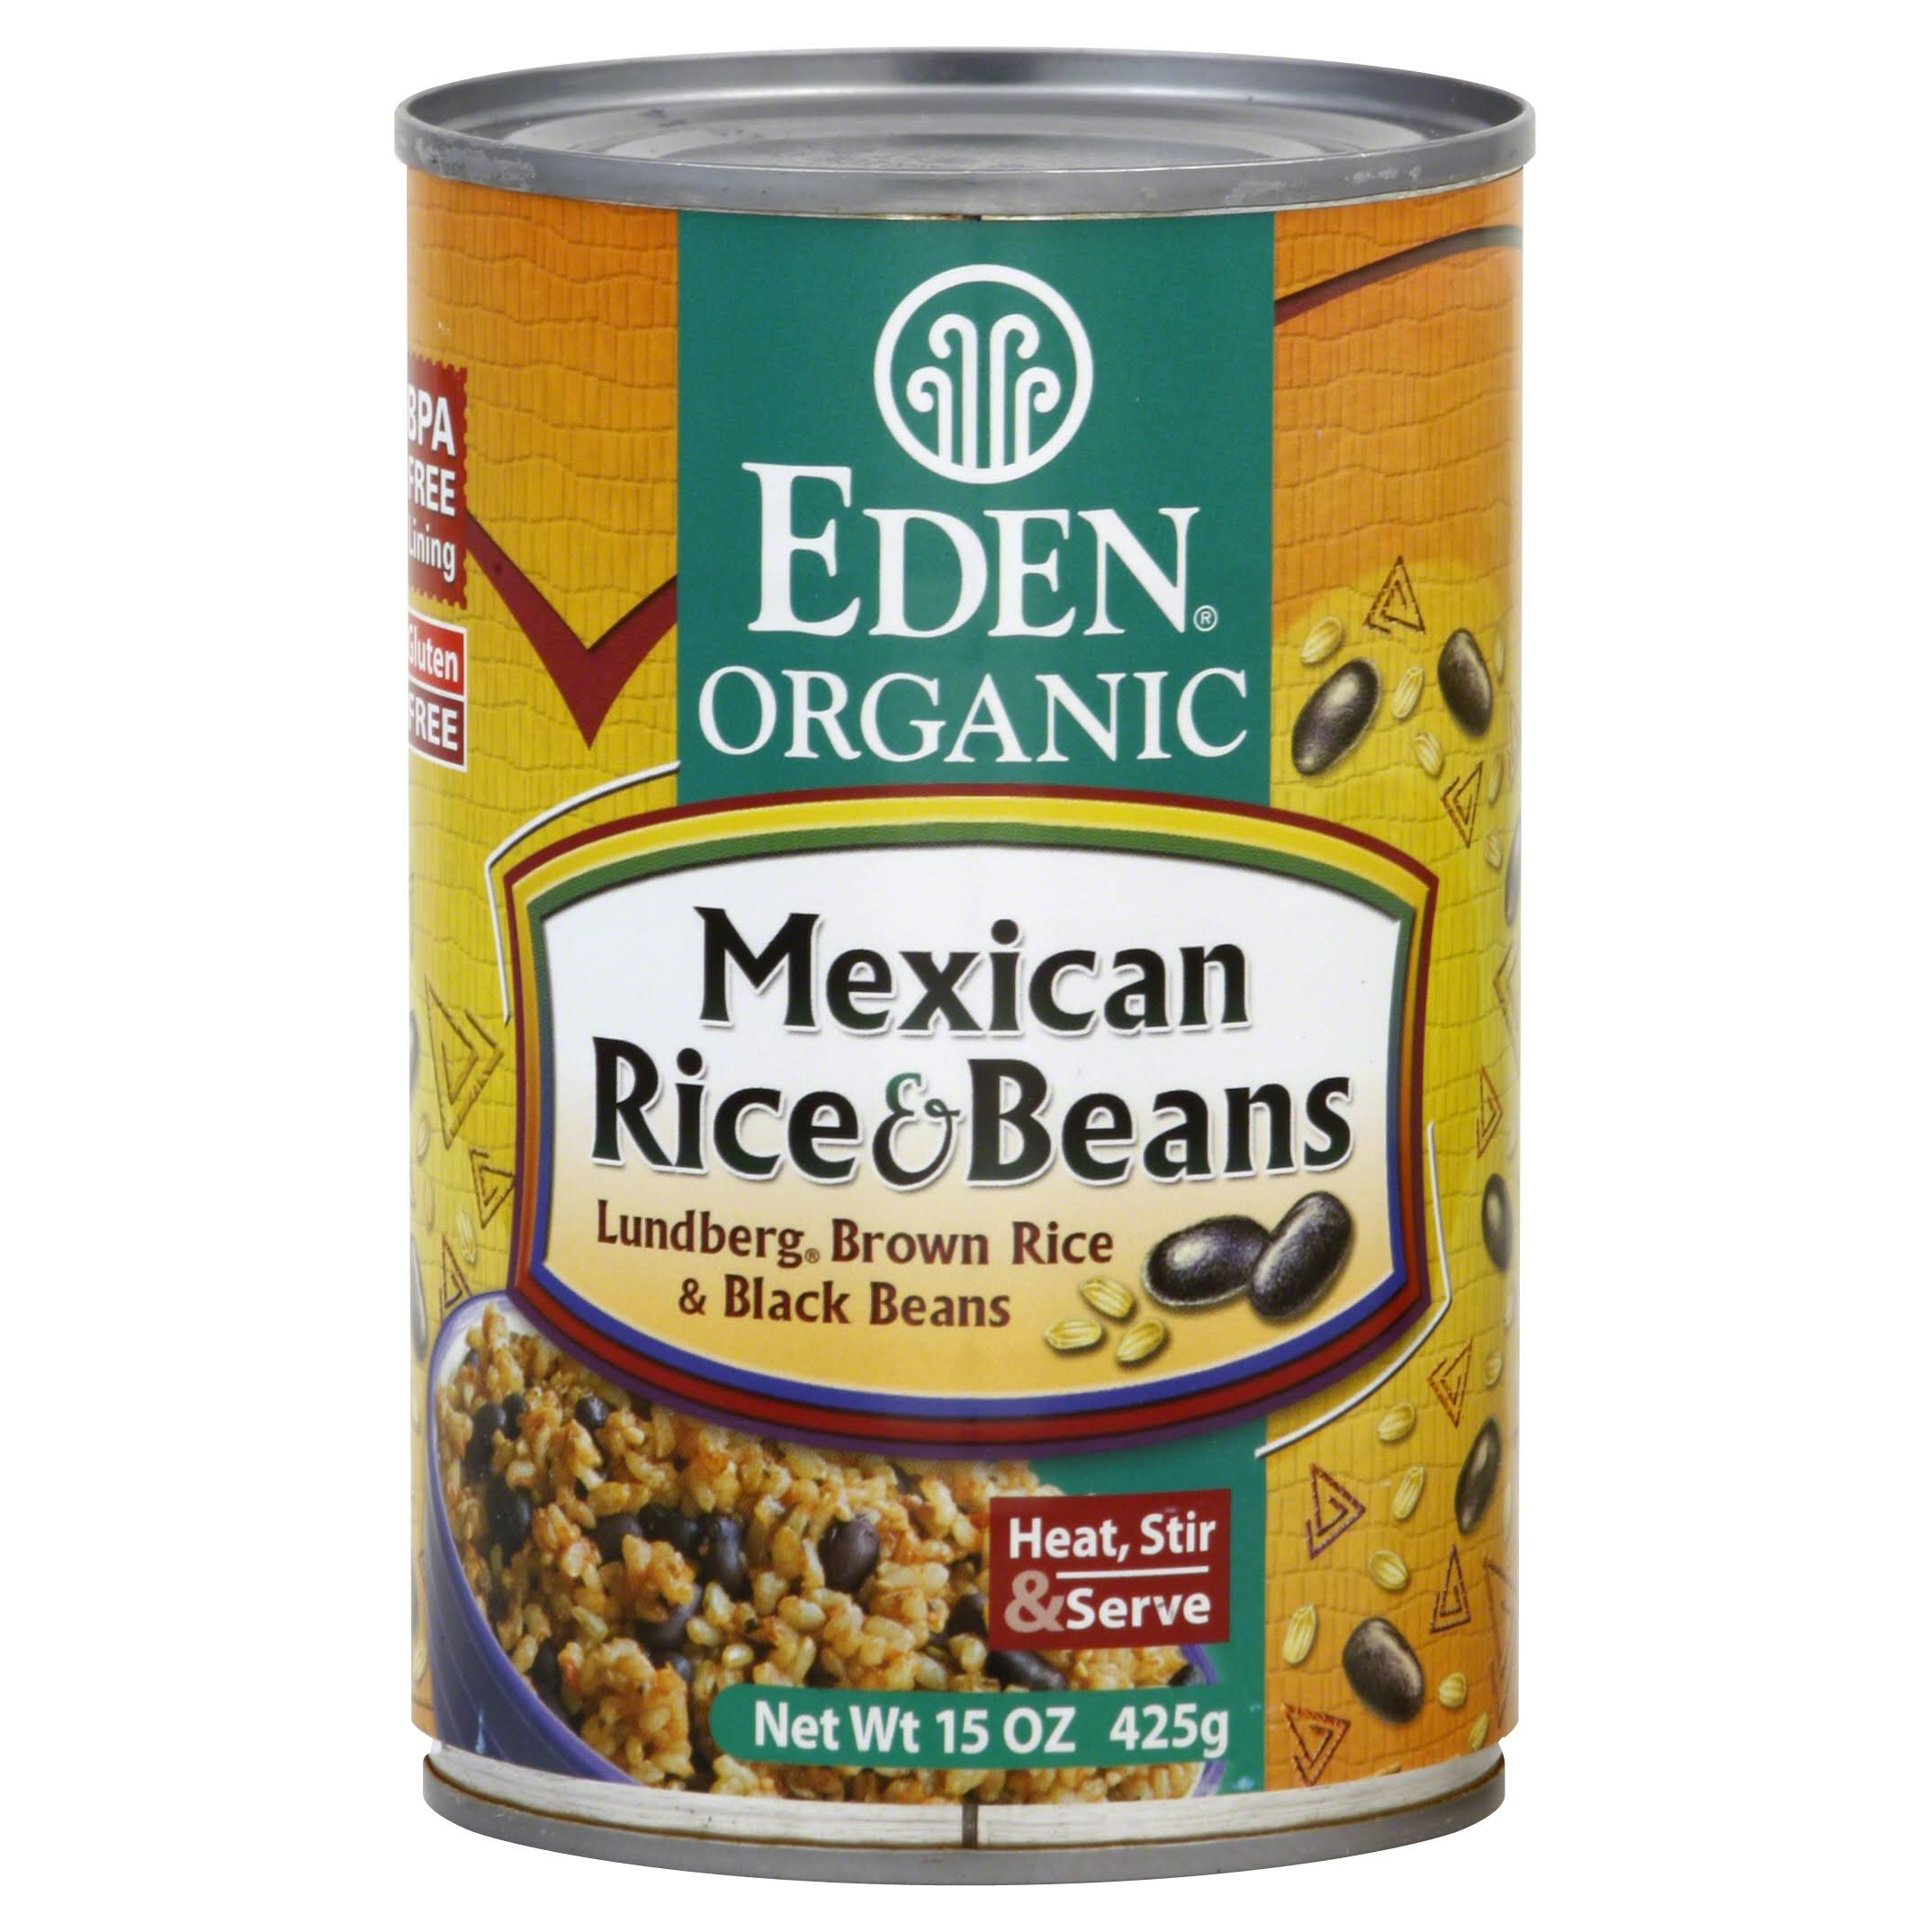 Eden Foods Organic Mexican Rice and Beans - 15oz